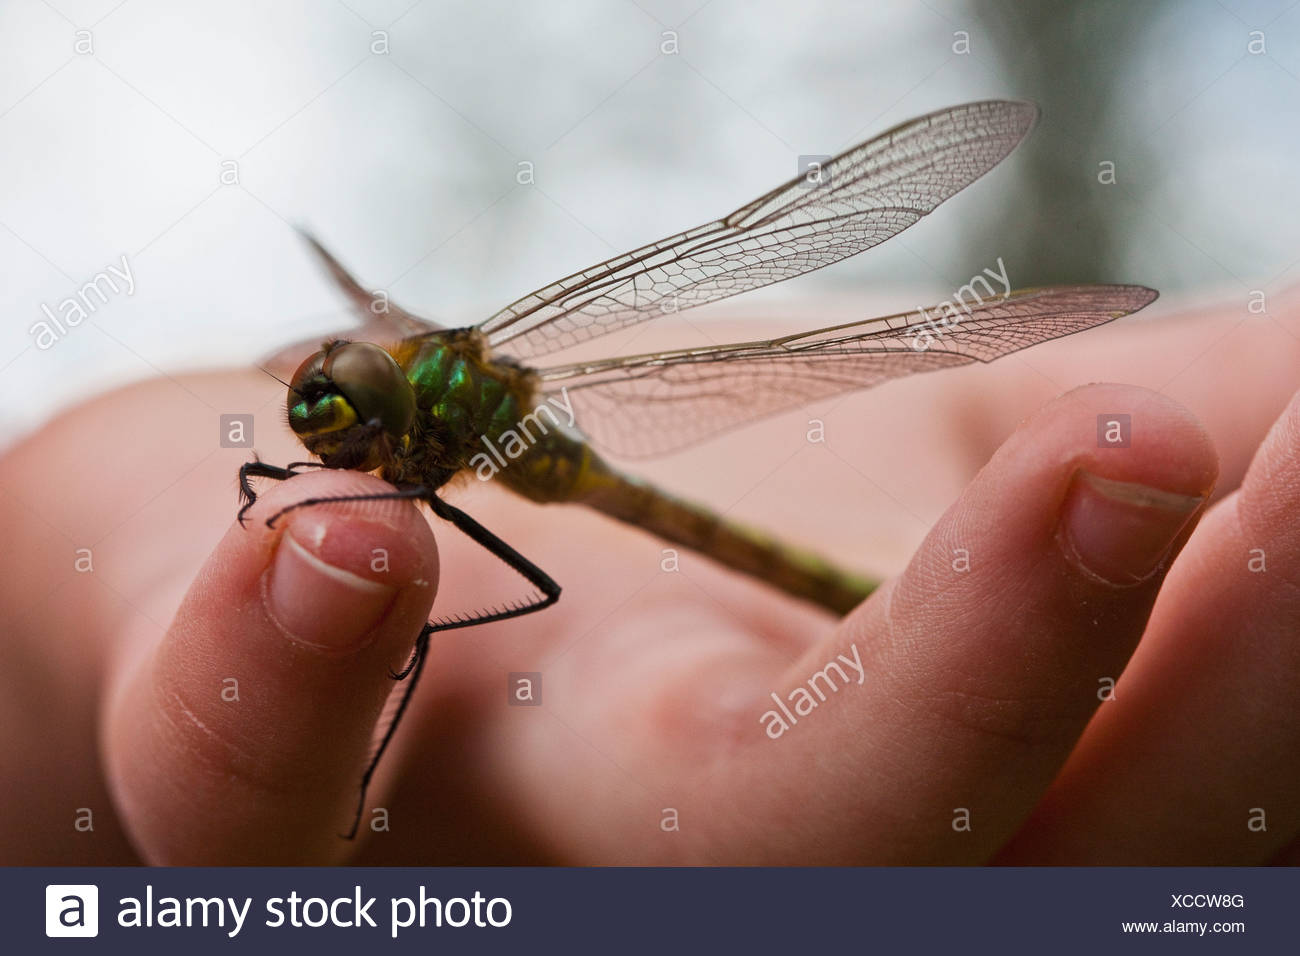 Dragonfly on finger - Stock Image